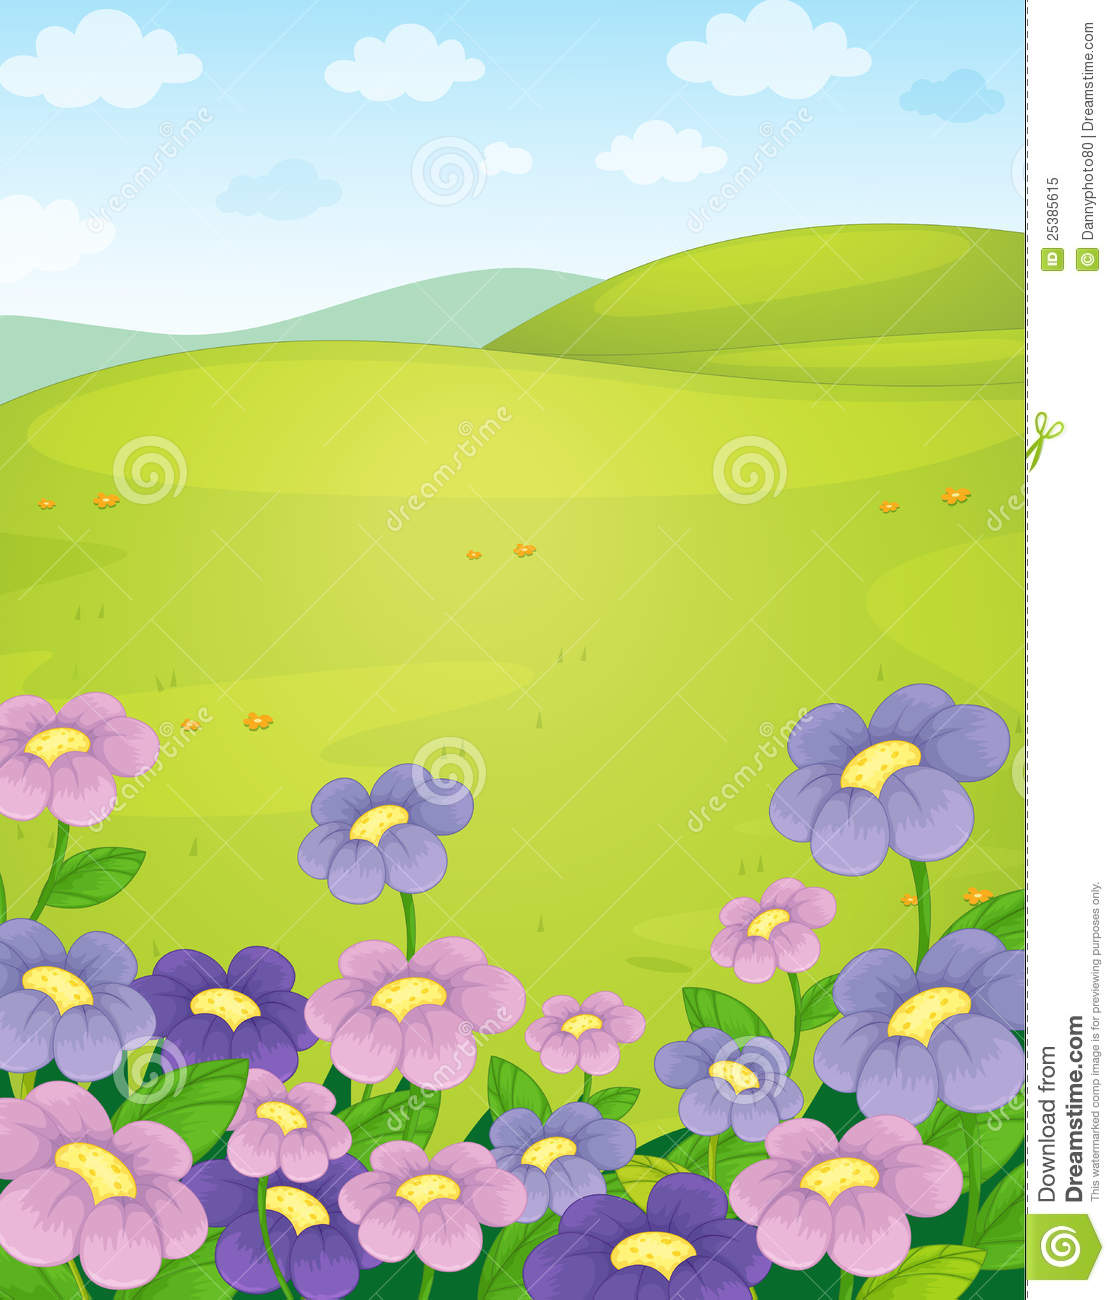 Nature Scene Royalty Free Stock Photo   Image  25385615